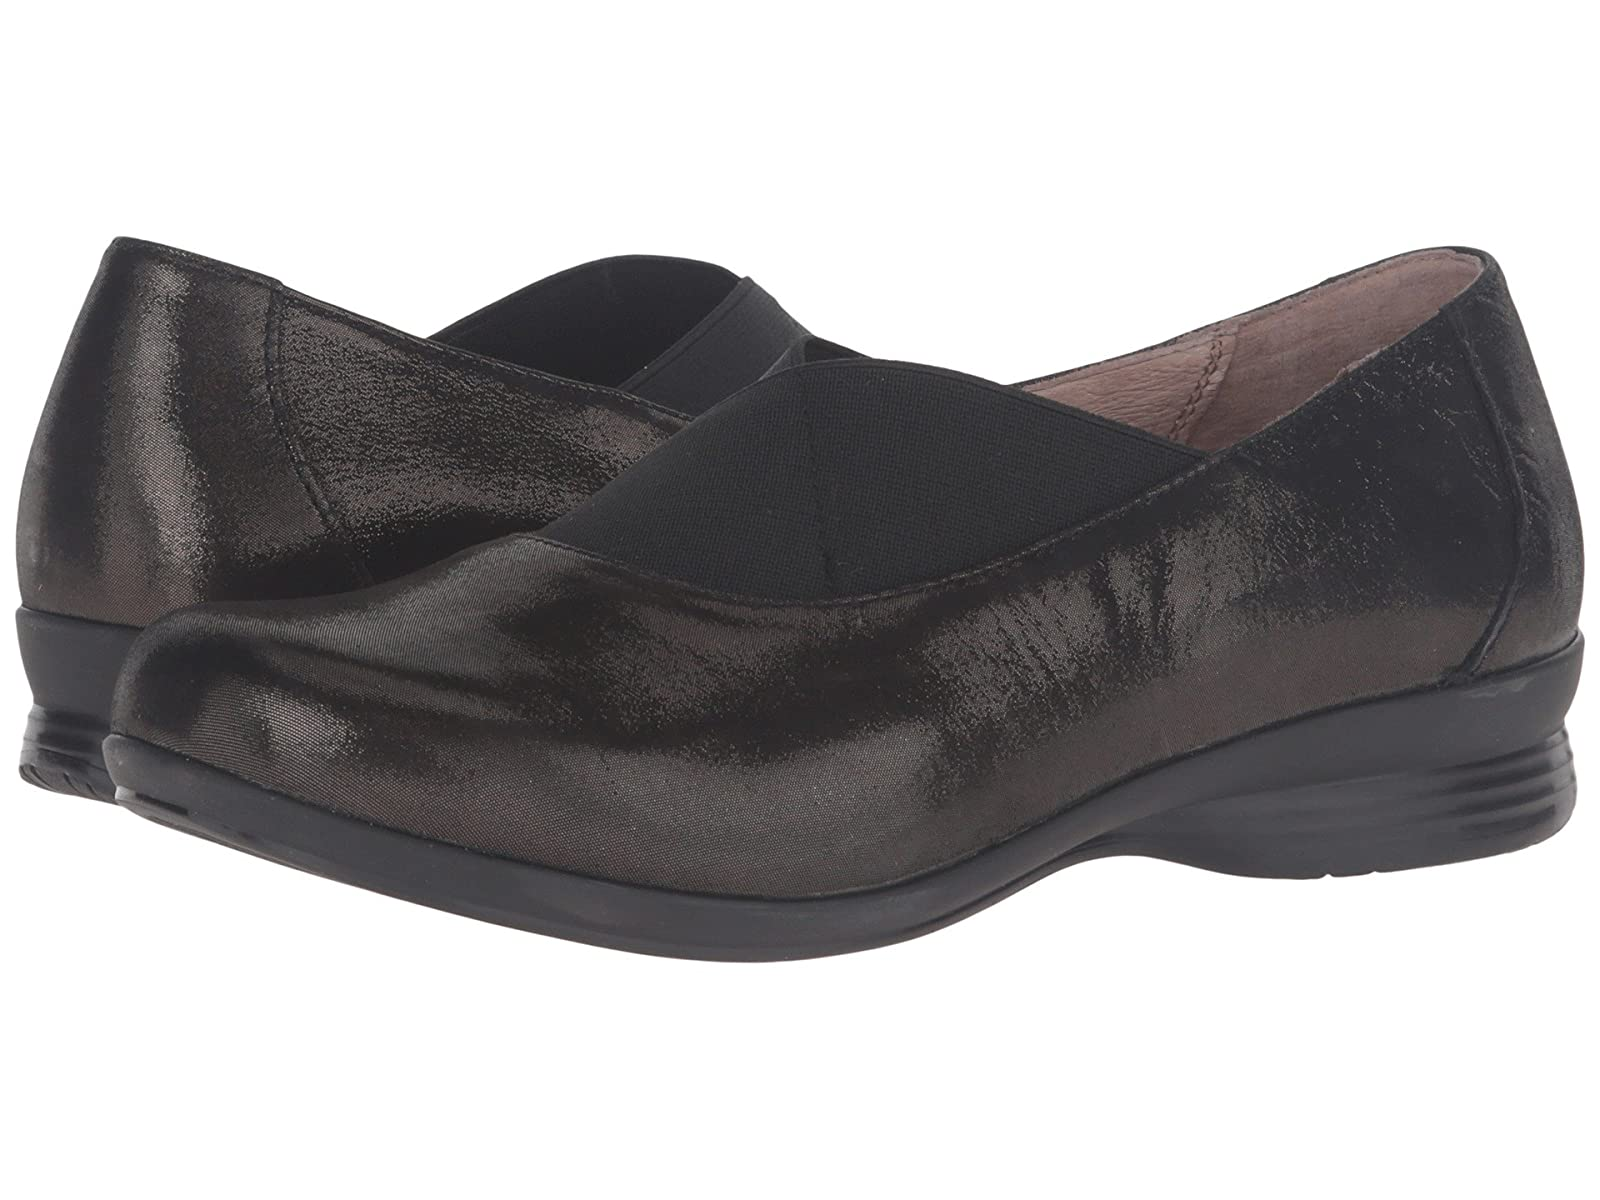 Dansko AnnCheap and distinctive eye-catching shoes